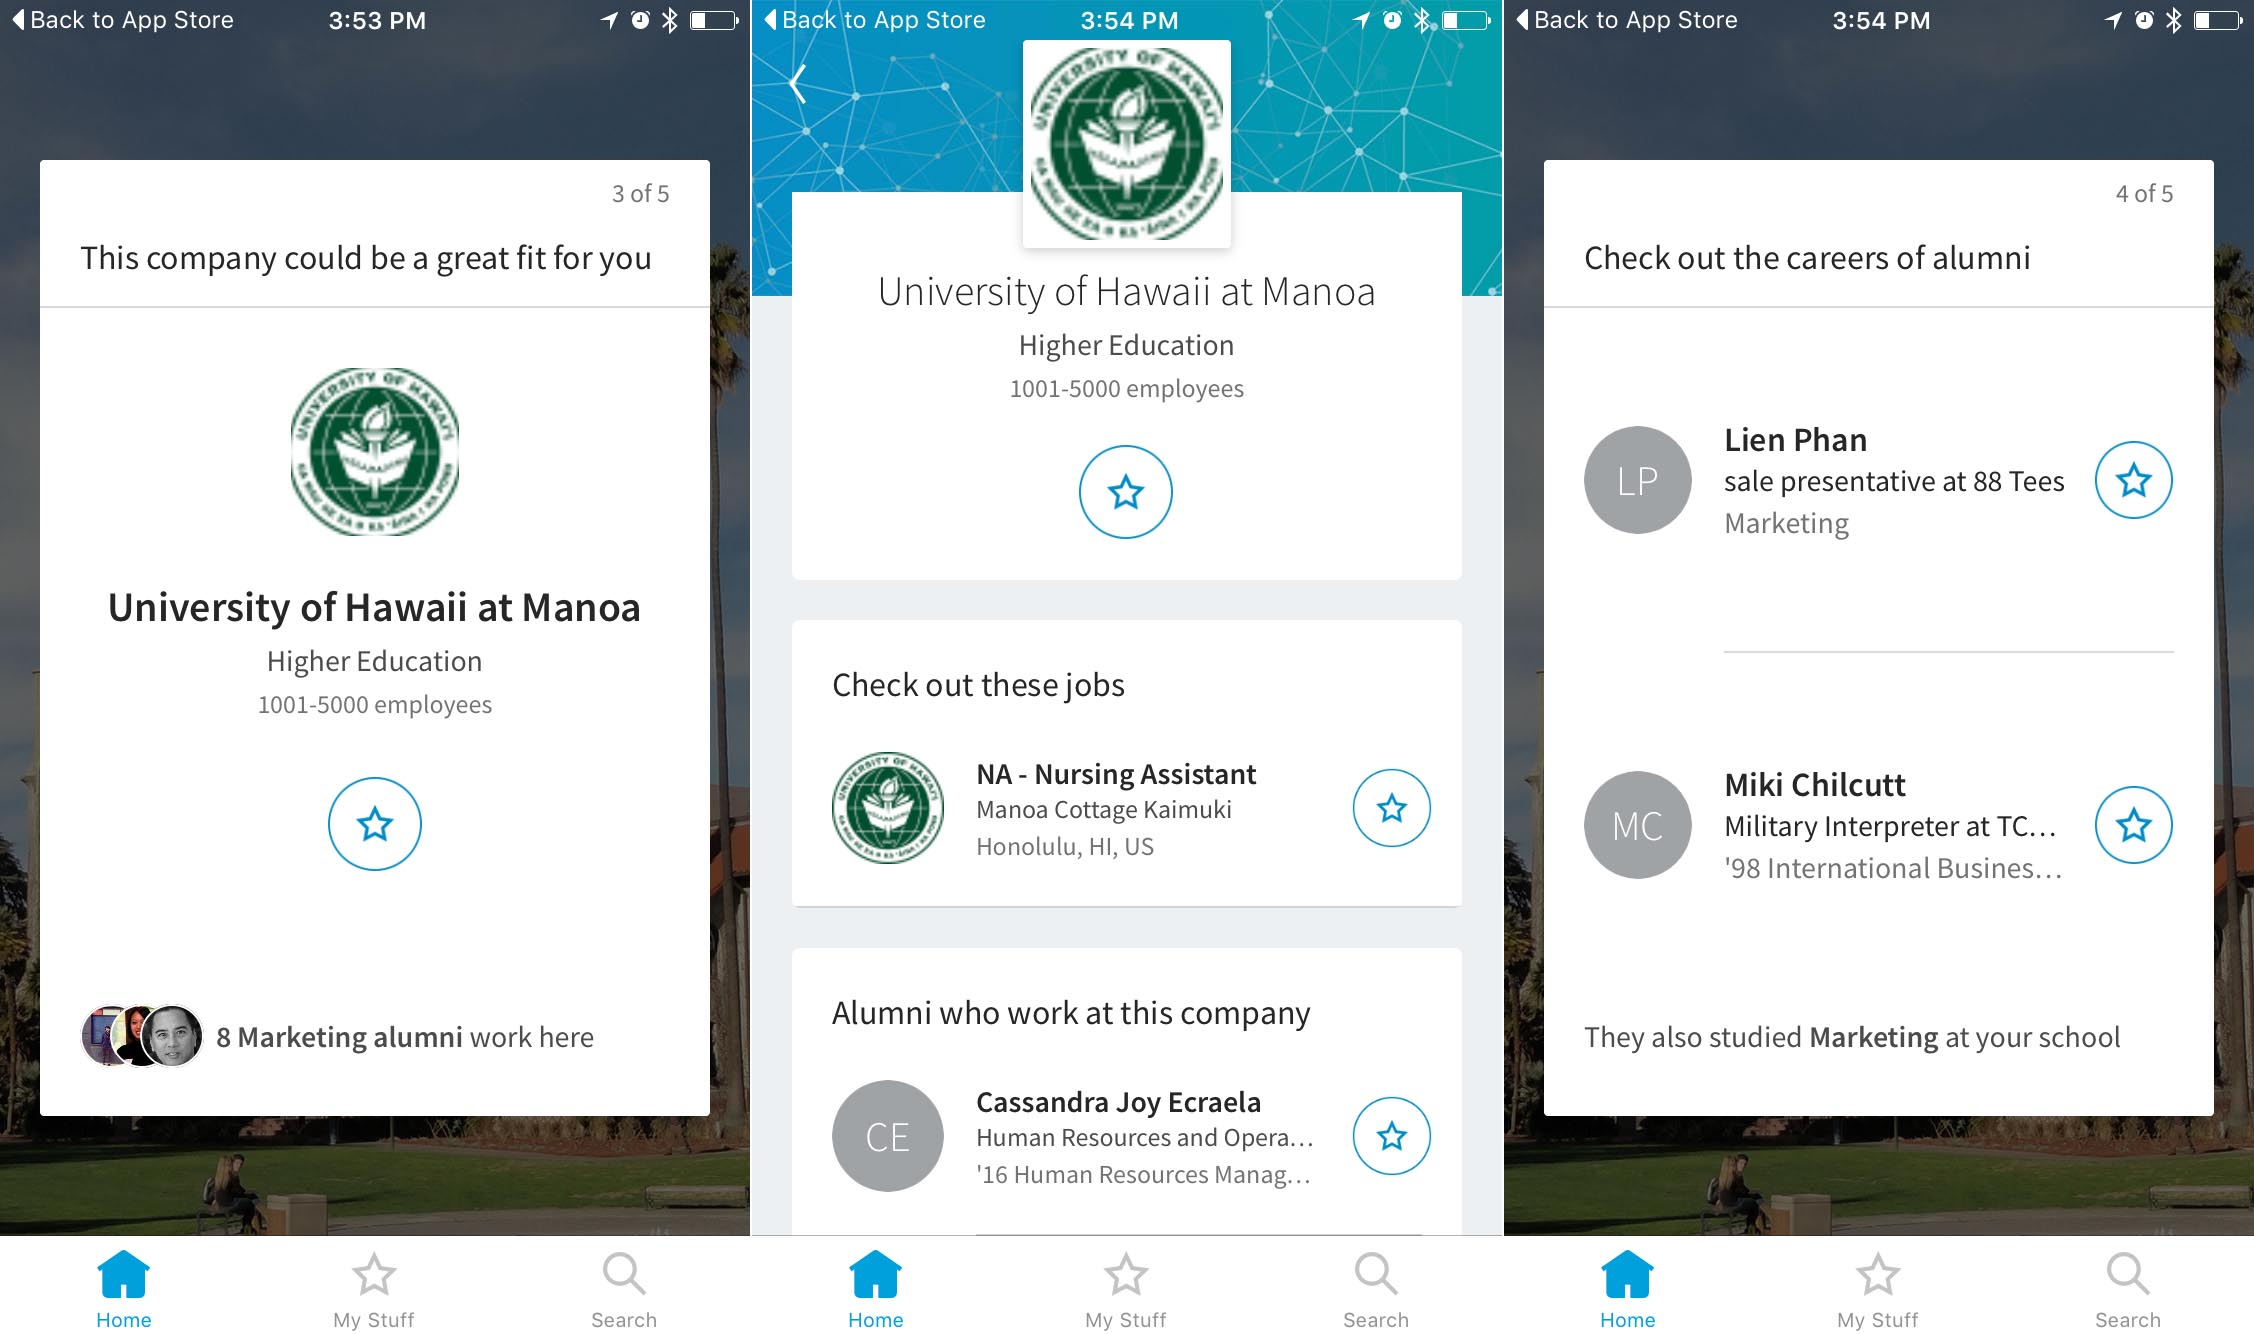 Screenshots of LinkedIn's Students iOS app showing a company you might want to apply for and alumni from your school you should connect with.